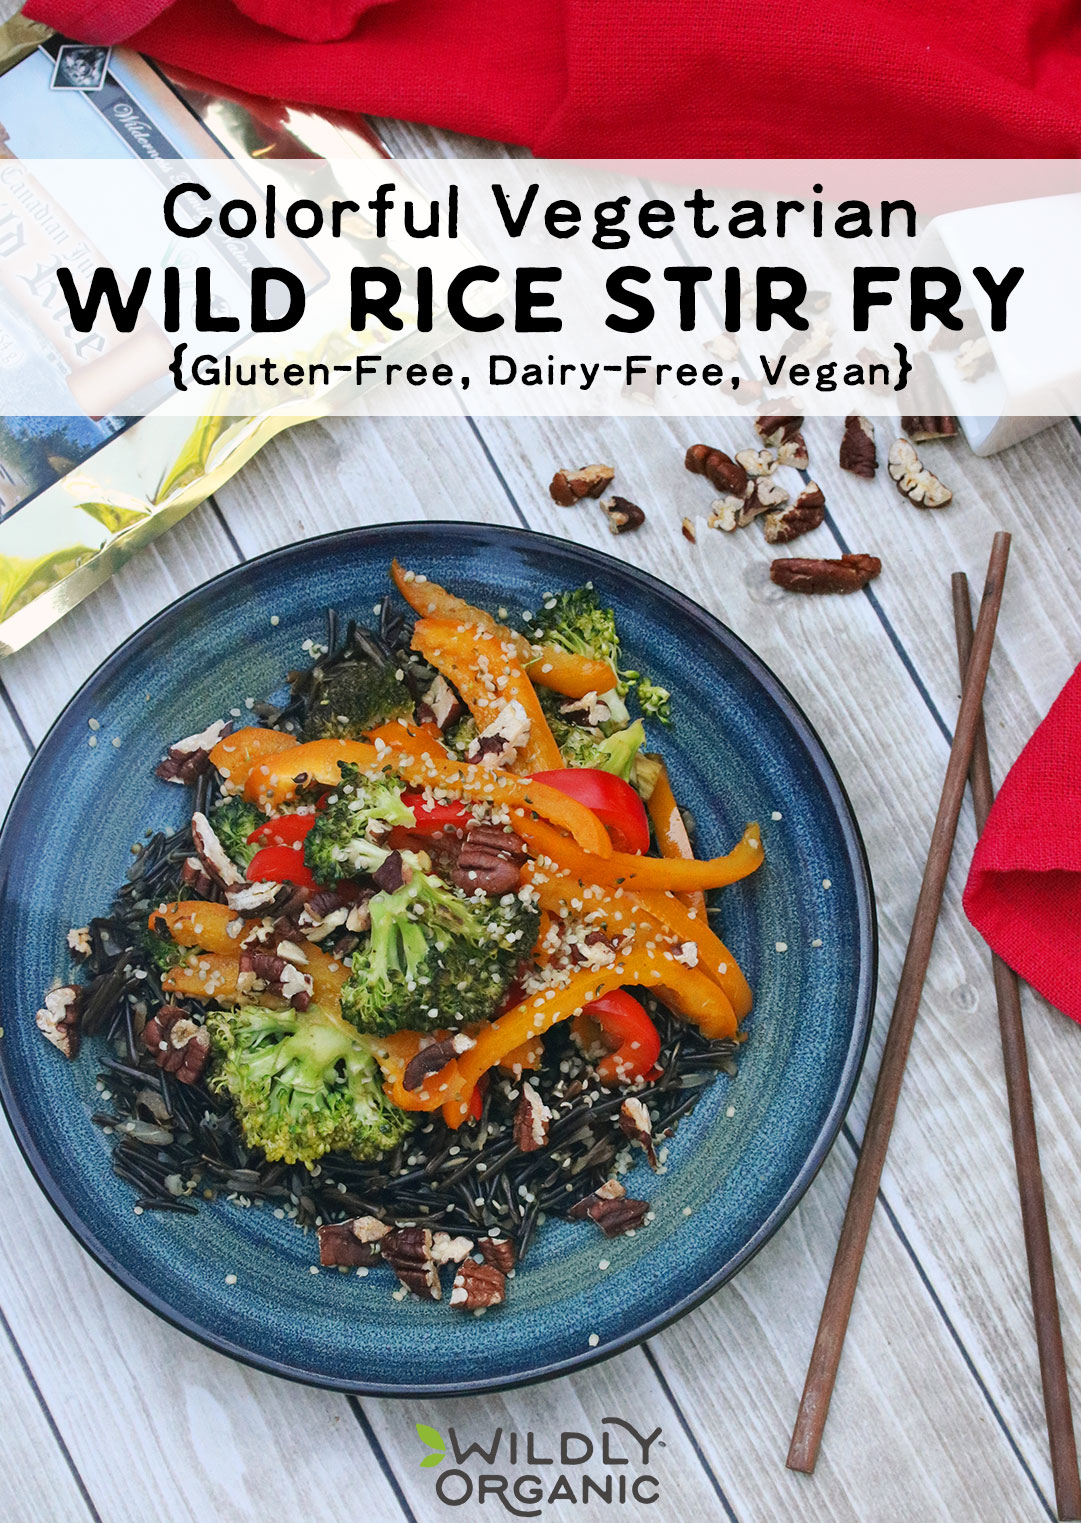 Colorful Vegetarian Wild Rice Stir Fry Gf Dairy Free Vegan